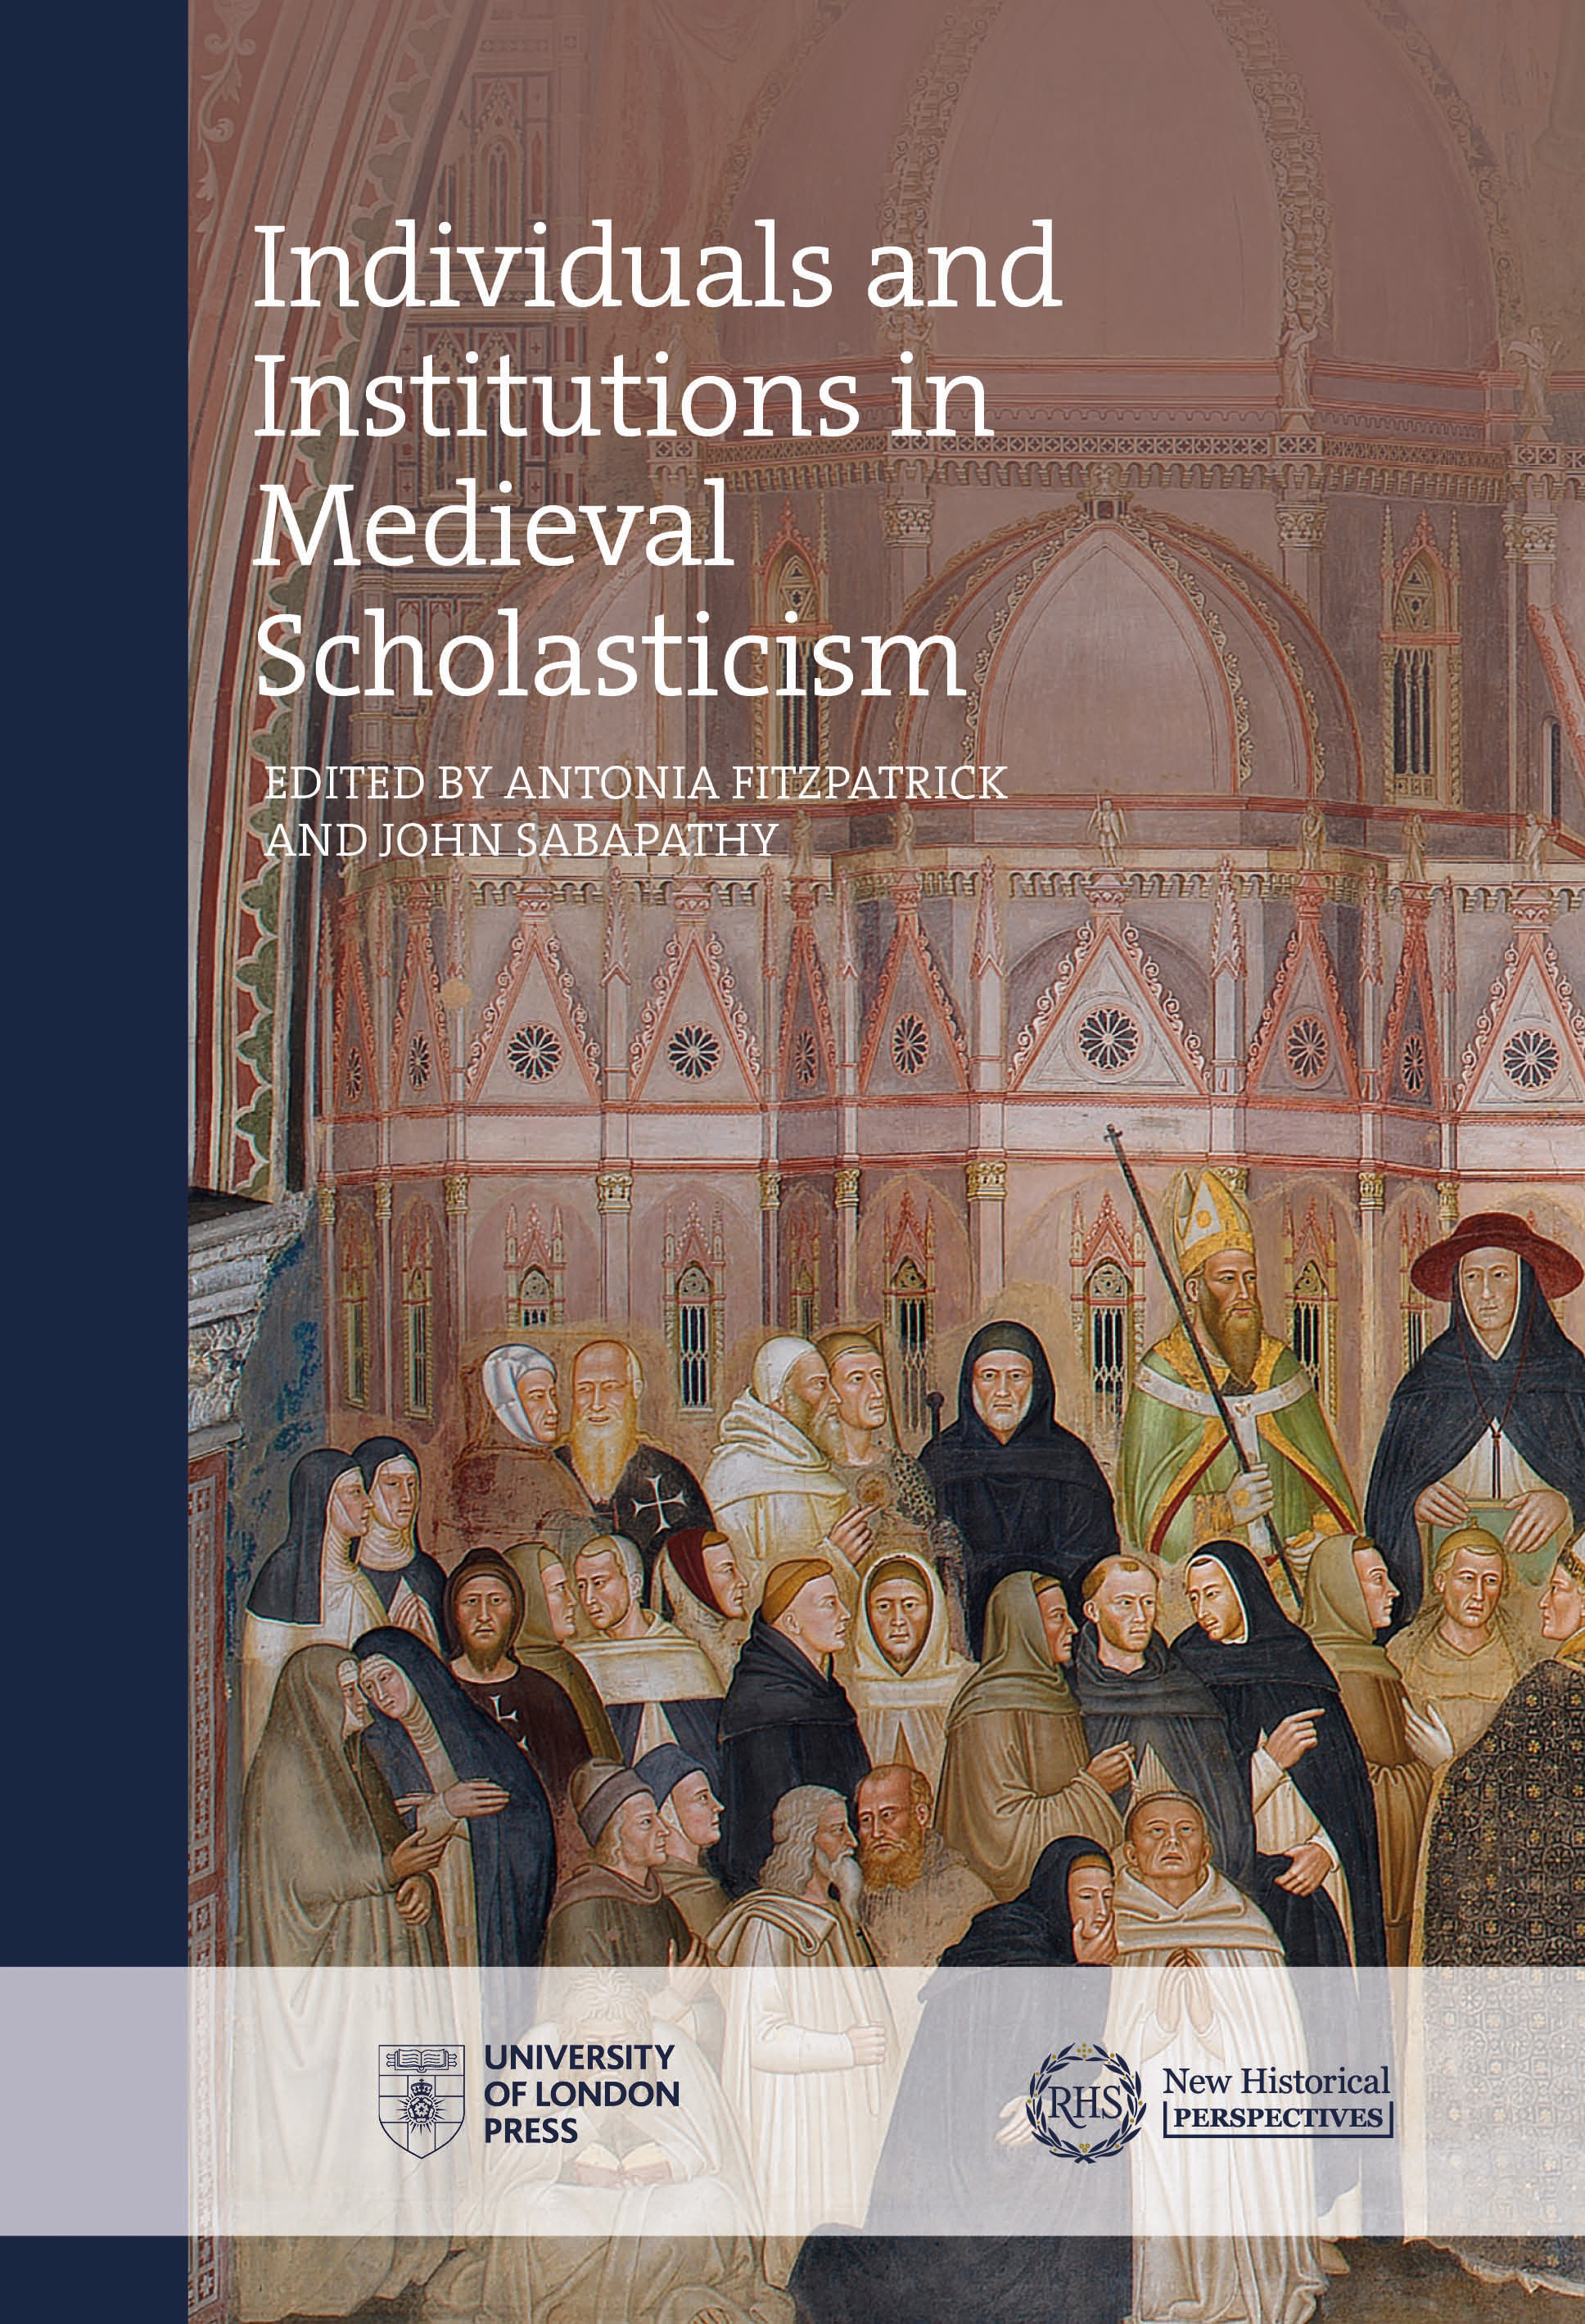 Individuals and Institutions in Medieval Scholasticism